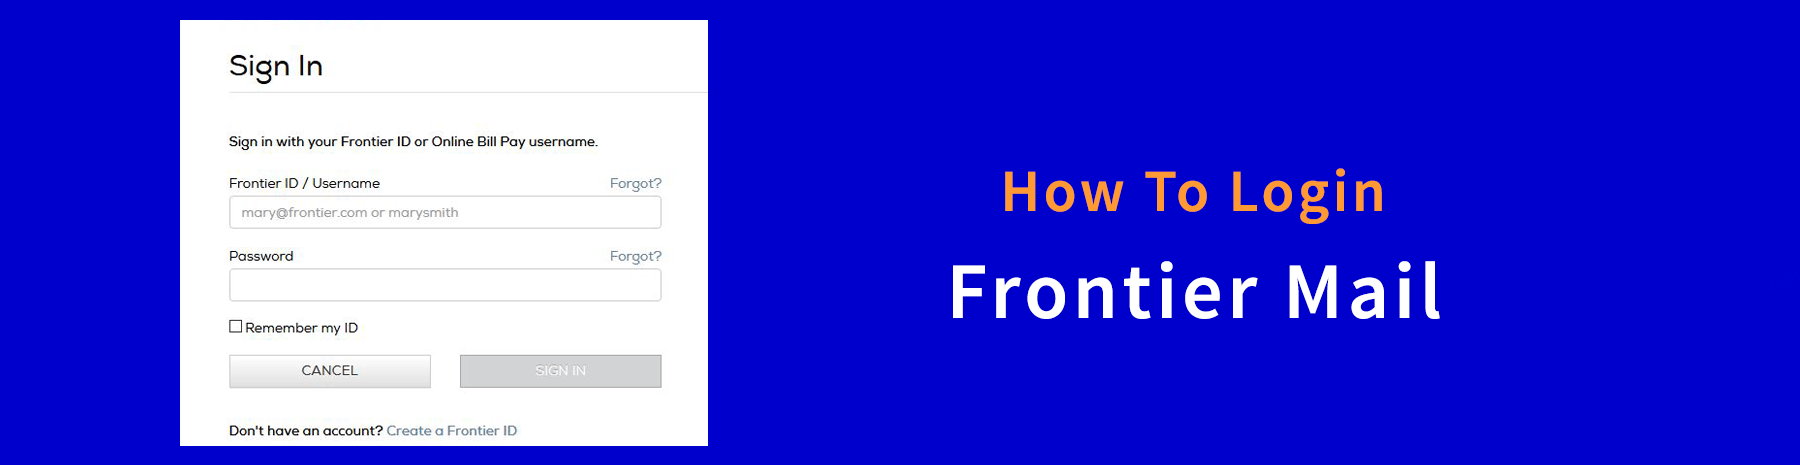 How to sign up and log in for the Frontier account?